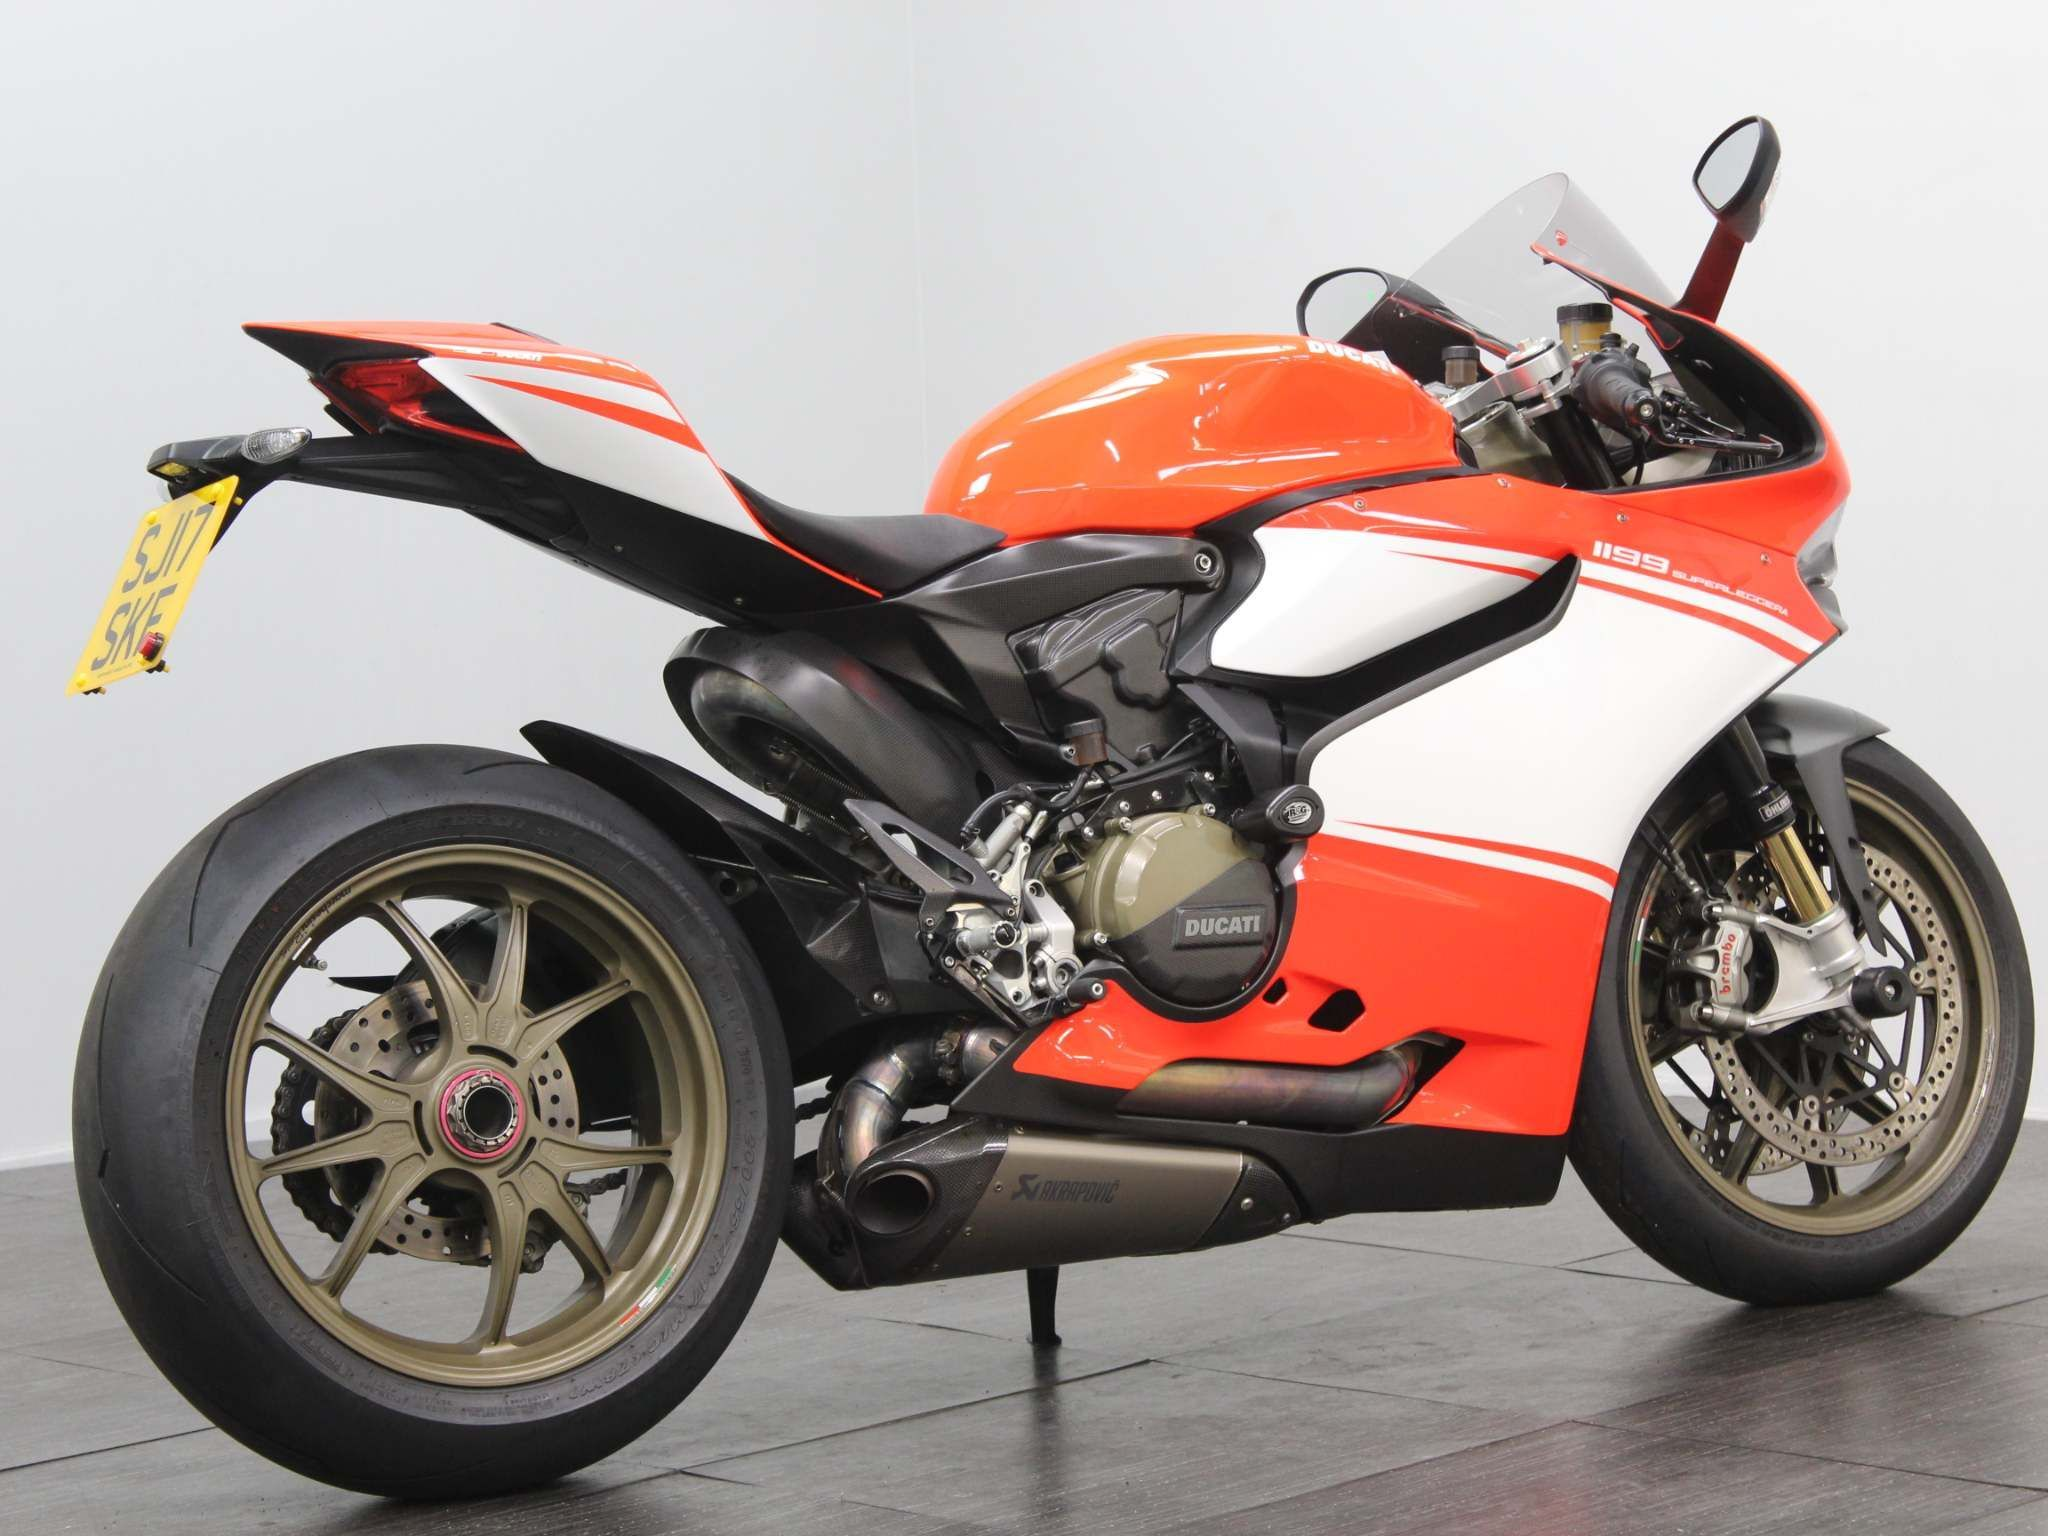 Ducati Superleggera Images